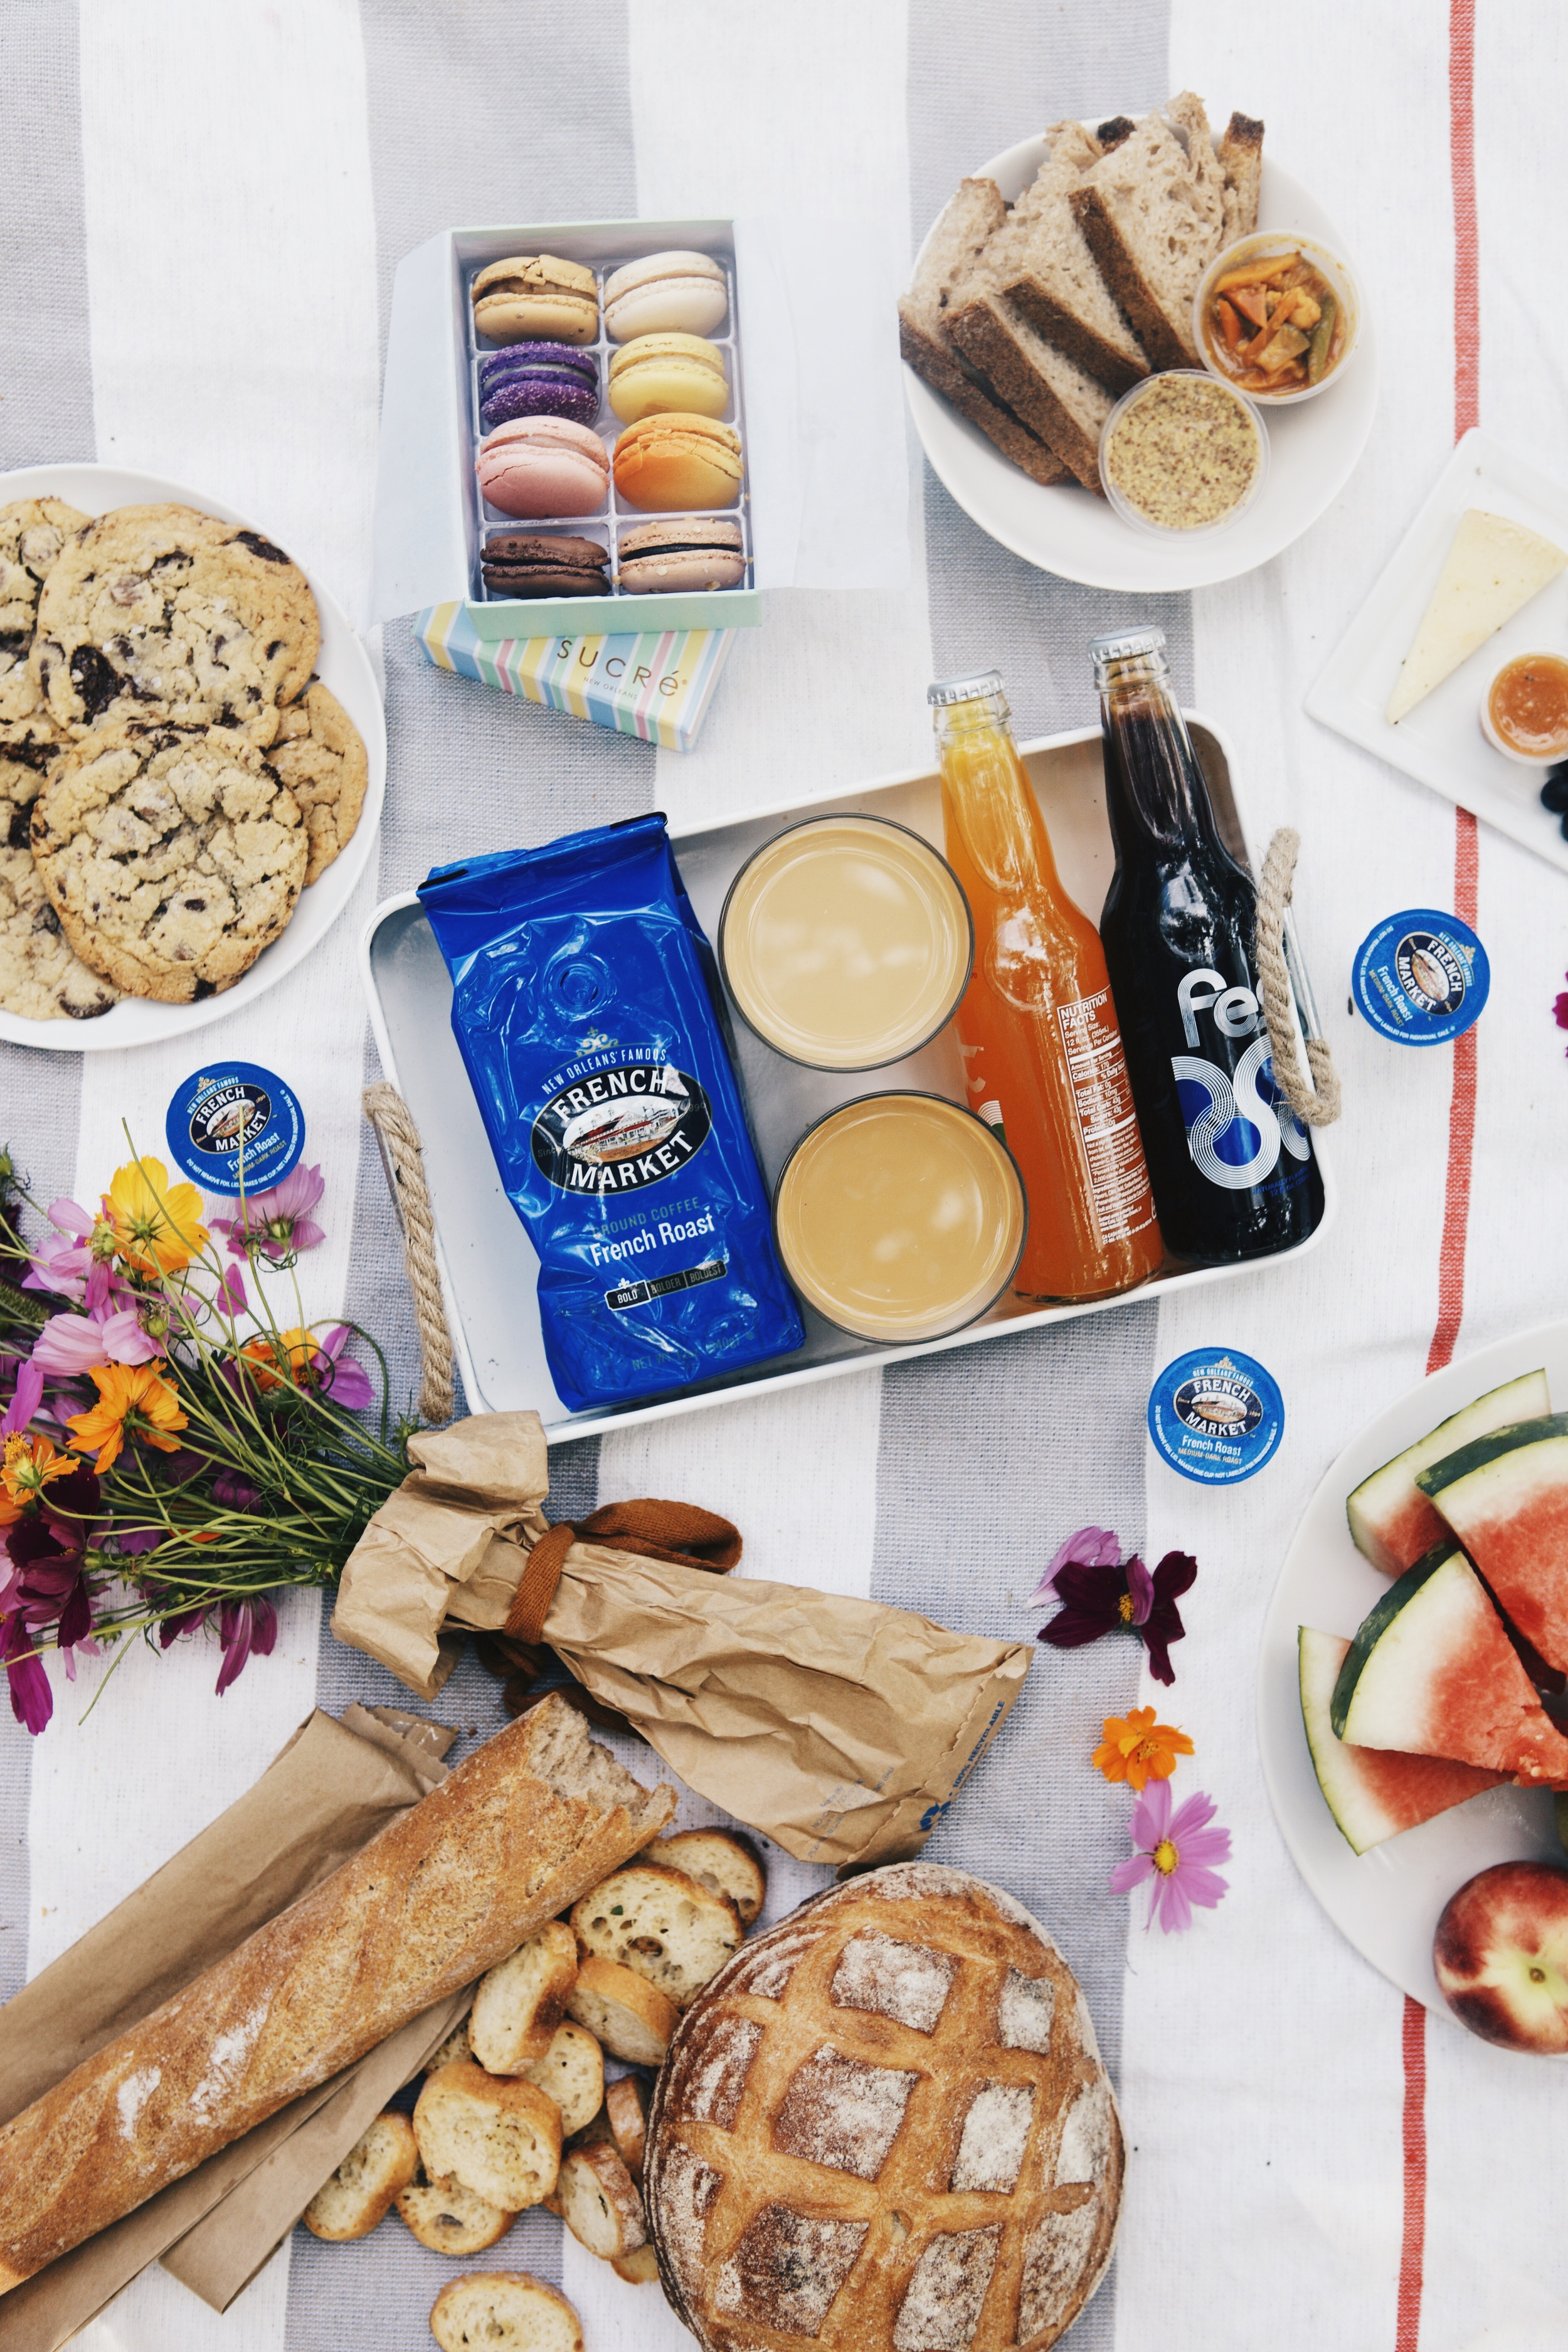 the quintessential City Parkpicnic: meats and cheeses from St. James Cheese Company, an overflow of freshly-baked breads from La Boulangerie, colorful macarons from Sucreand iced French Market Coffee French Roast.